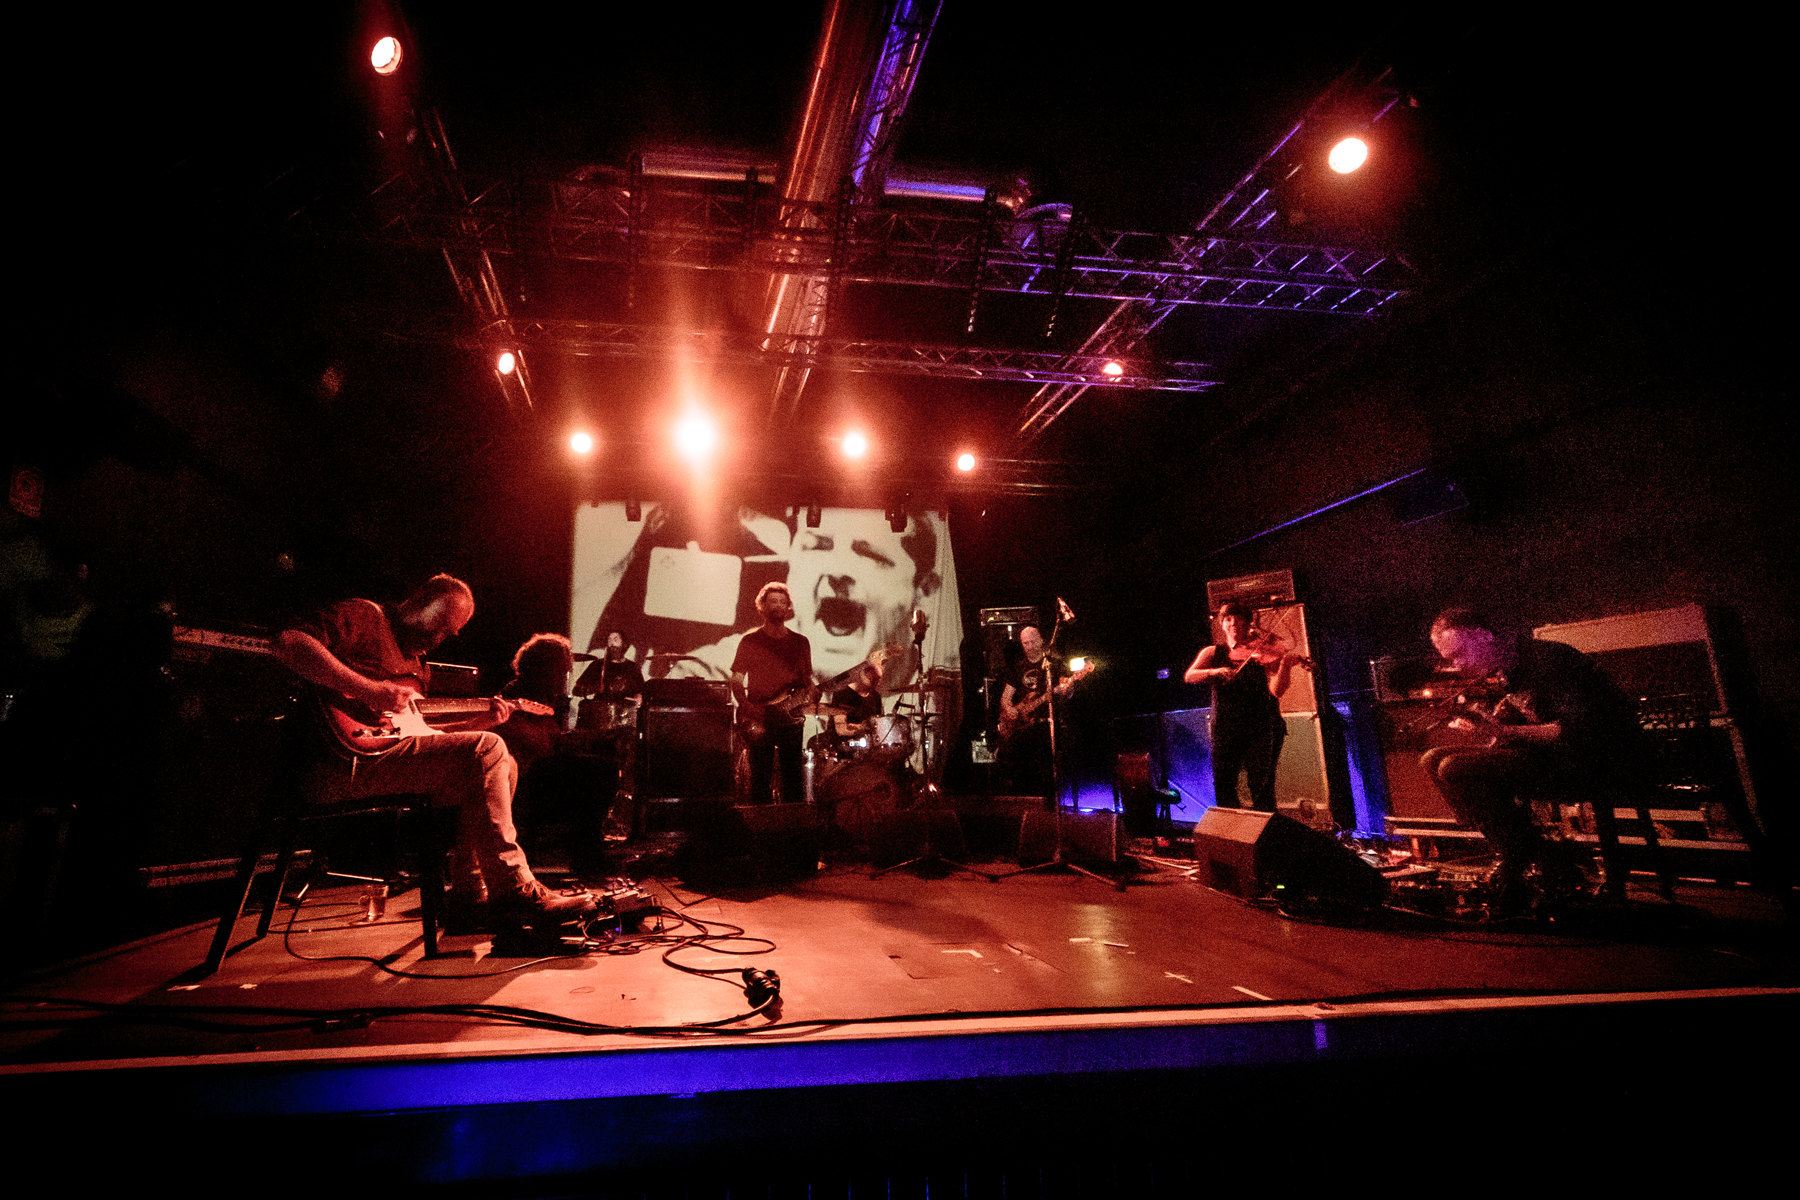 Godspeed You! Black Emperor Announce New LP 'G_d's Pee at State's End!'